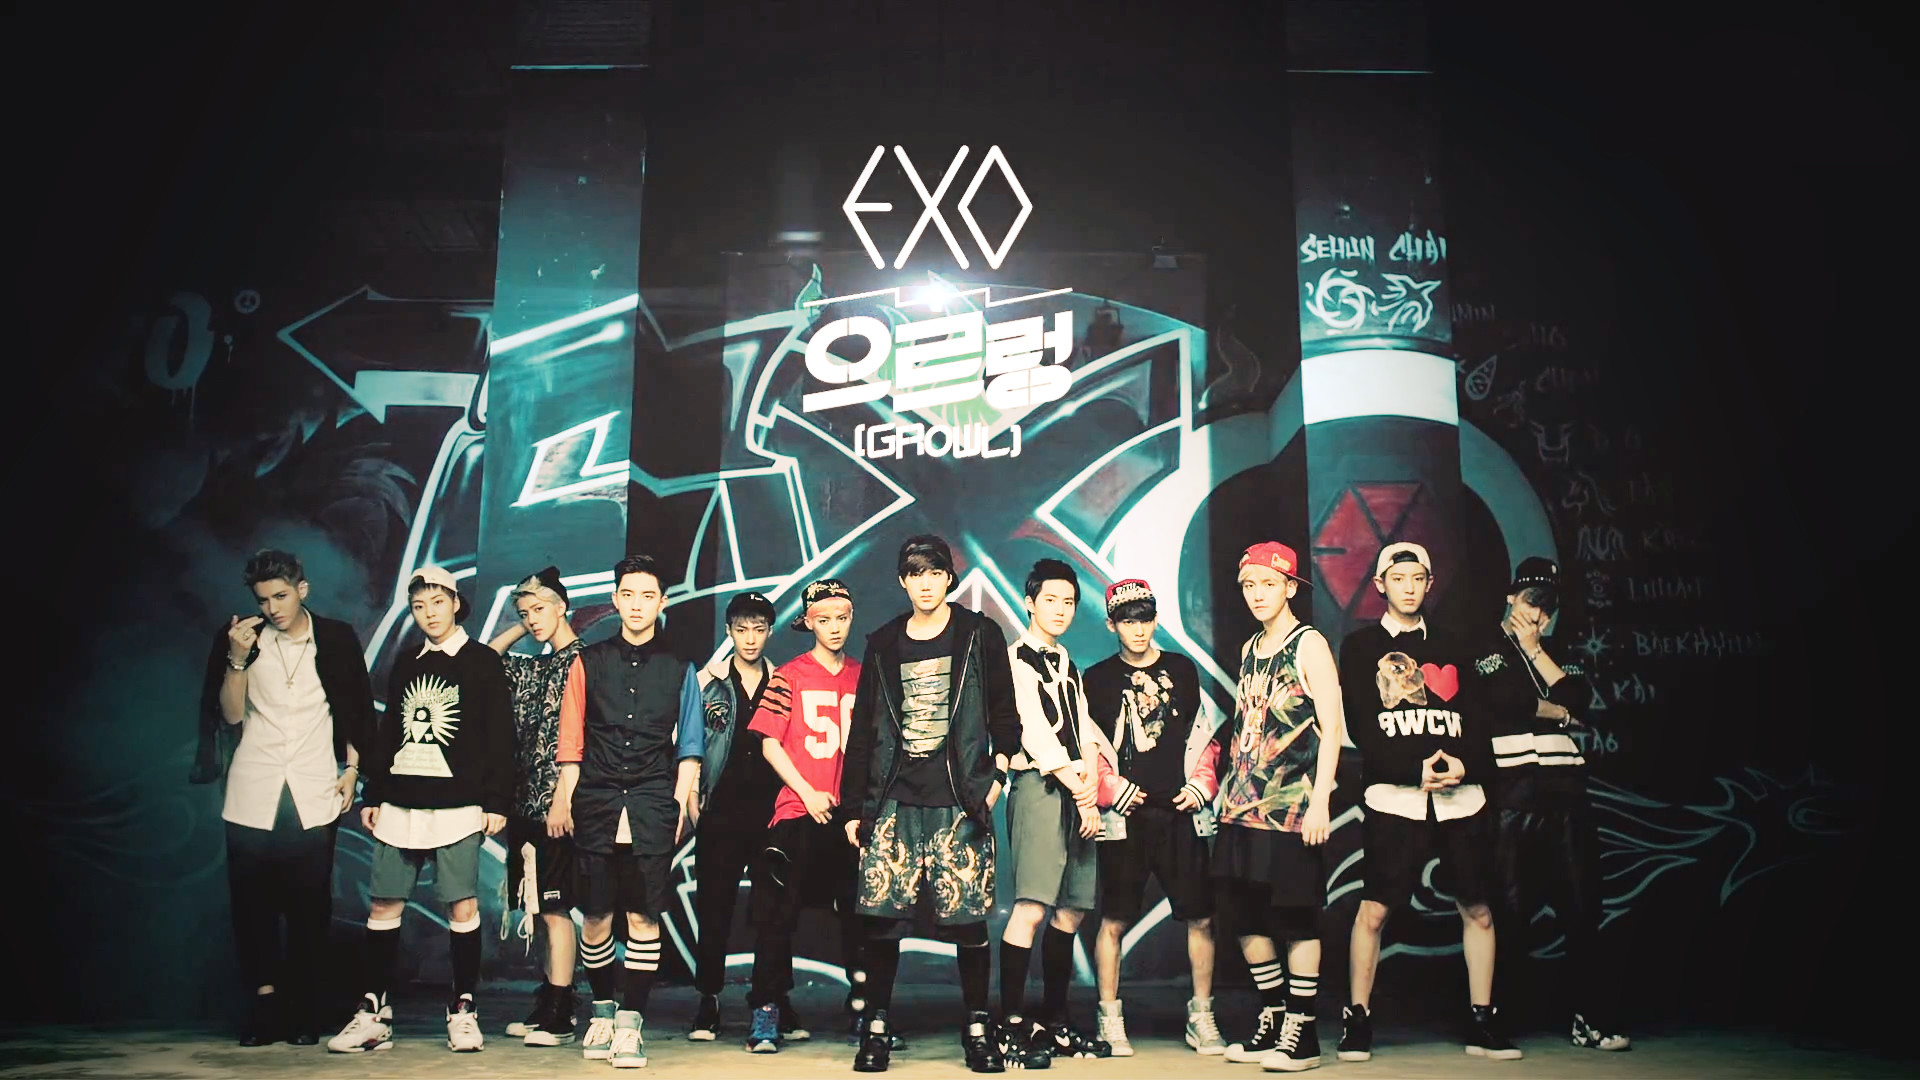 Exo Wallpaper Hd 82 Images